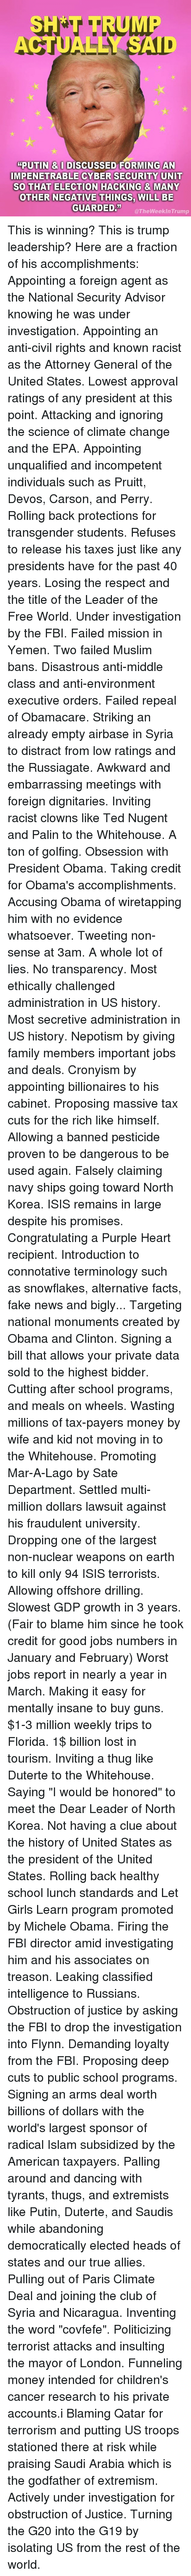 Népotisme: SH T TRUMP  ACTUALLY SAID  RUMI  PUTIN & I DISCUSSED FORMING AN  IMPENETRABLE CYBER SECURITY UNIT  SO THAT ELECTION HACKING & MANY  OTHER NEGATIVE THINGS, WILL BE  QUARDEDheWeekin Trump This is winning? This is trump leadership?  Here are a fraction of his accomplishments: Appointing a foreign agent as the National Security Advisor knowing he was under investigation. Appointing an anti-civil rights and known racist as the Attorney General of the United States. Lowest approval ratings of any president at this point. Attacking and ignoring the science of climate change and the EPA. Appointing unqualified and incompetent individuals such as Pruitt, Devos, Carson, and Perry. Rolling back protections for transgender students. Refuses to release his taxes just like any presidents have for the past 40 years. Losing the respect and the title of the Leader of the Free World. Under investigation by the FBI. Failed mission in Yemen. Two failed Muslim bans. Disastrous anti-middle class and anti-environment executive orders. Failed repeal of Obamacare. Striking an already empty airbase in Syria to distract from low ratings and the Russiagate. Awkward and embarrassing meetings with foreign dignitaries. Inviting racist clowns like Ted Nugent and Palin to the Whitehouse. A ton of golfing. Obsession with President Obama. Taking credit for Obama's accomplishments. Accusing Obama of wiretapping him with no evidence whatsoever. Tweeting non-sense at 3am. A whole lot of lies. No transparency. Most ethically challenged administration in US history. Most secretive administration in US history. Nepotism by giving family members important jobs and deals. Cronyism by appointing billionaires to his cabinet. Proposing massive tax cuts for the rich like himself. Allowing a banned pesticide proven to be dangerous to be used again. Falsely claiming navy ships going toward North Korea. ISIS remains in large despite his promises. Congratulating a Purple Heart recipient. Introduction to c